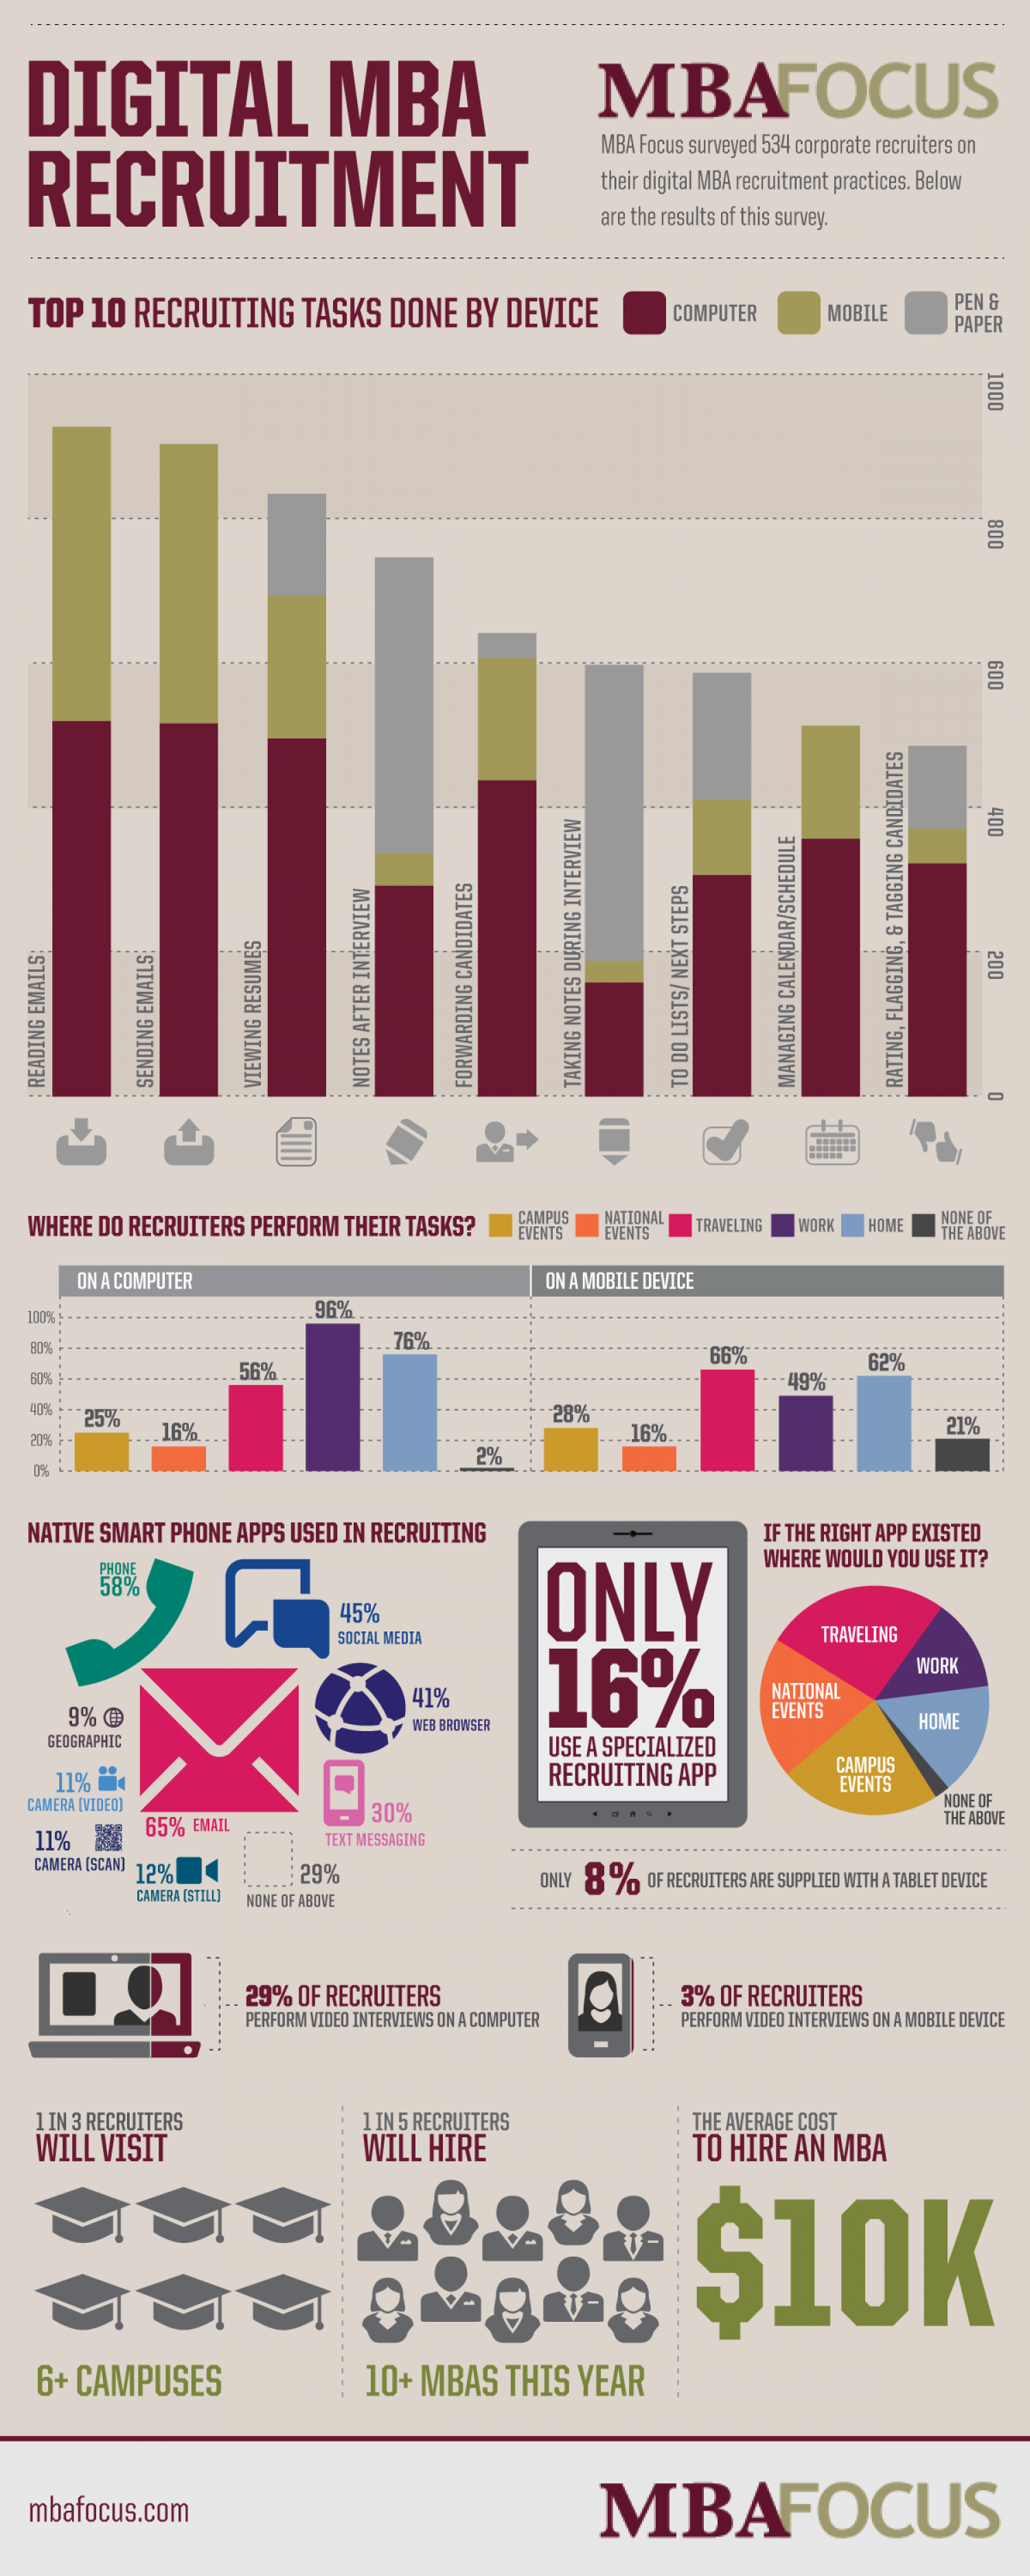 Digital MBA Recruiment Infographic